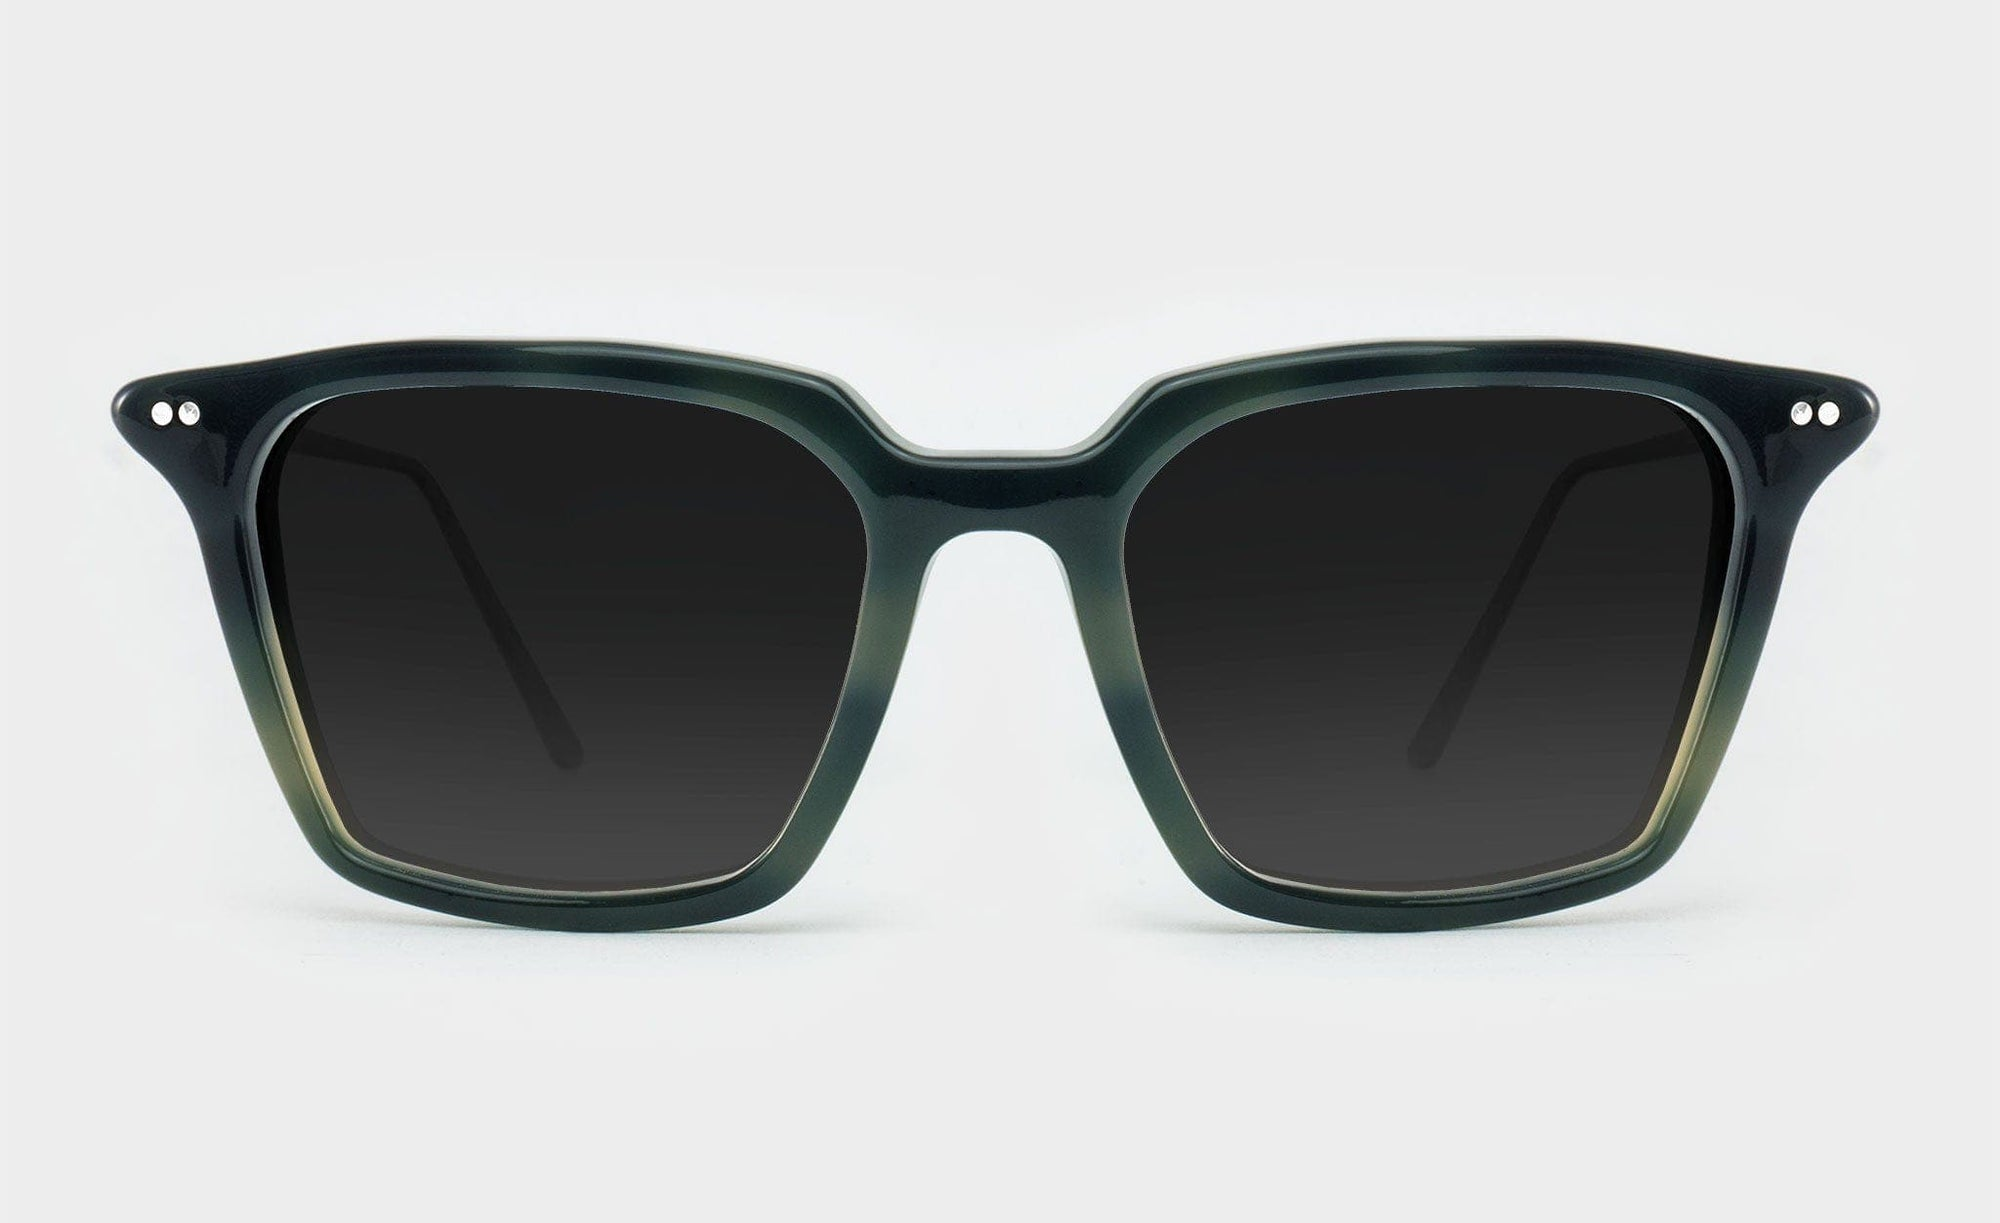 Square Polarised sunglasses Frame